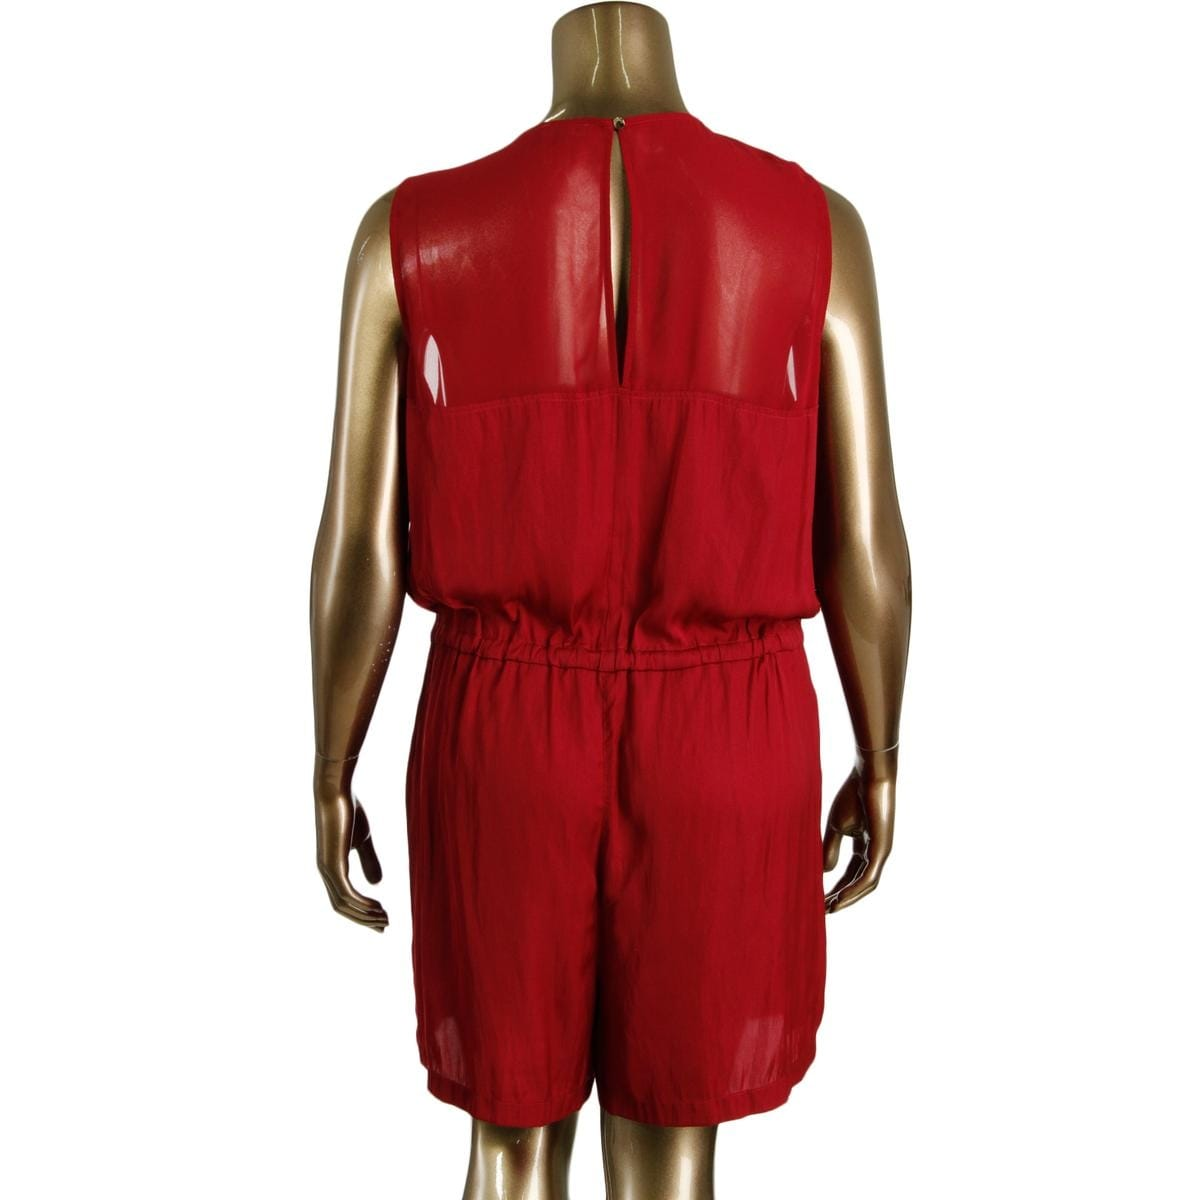 d2341e642166 Shop Vince Camuto Womens Romper Chiffon Rumpled - Free Shipping On Orders  Over  45 - Overstock - 13088944